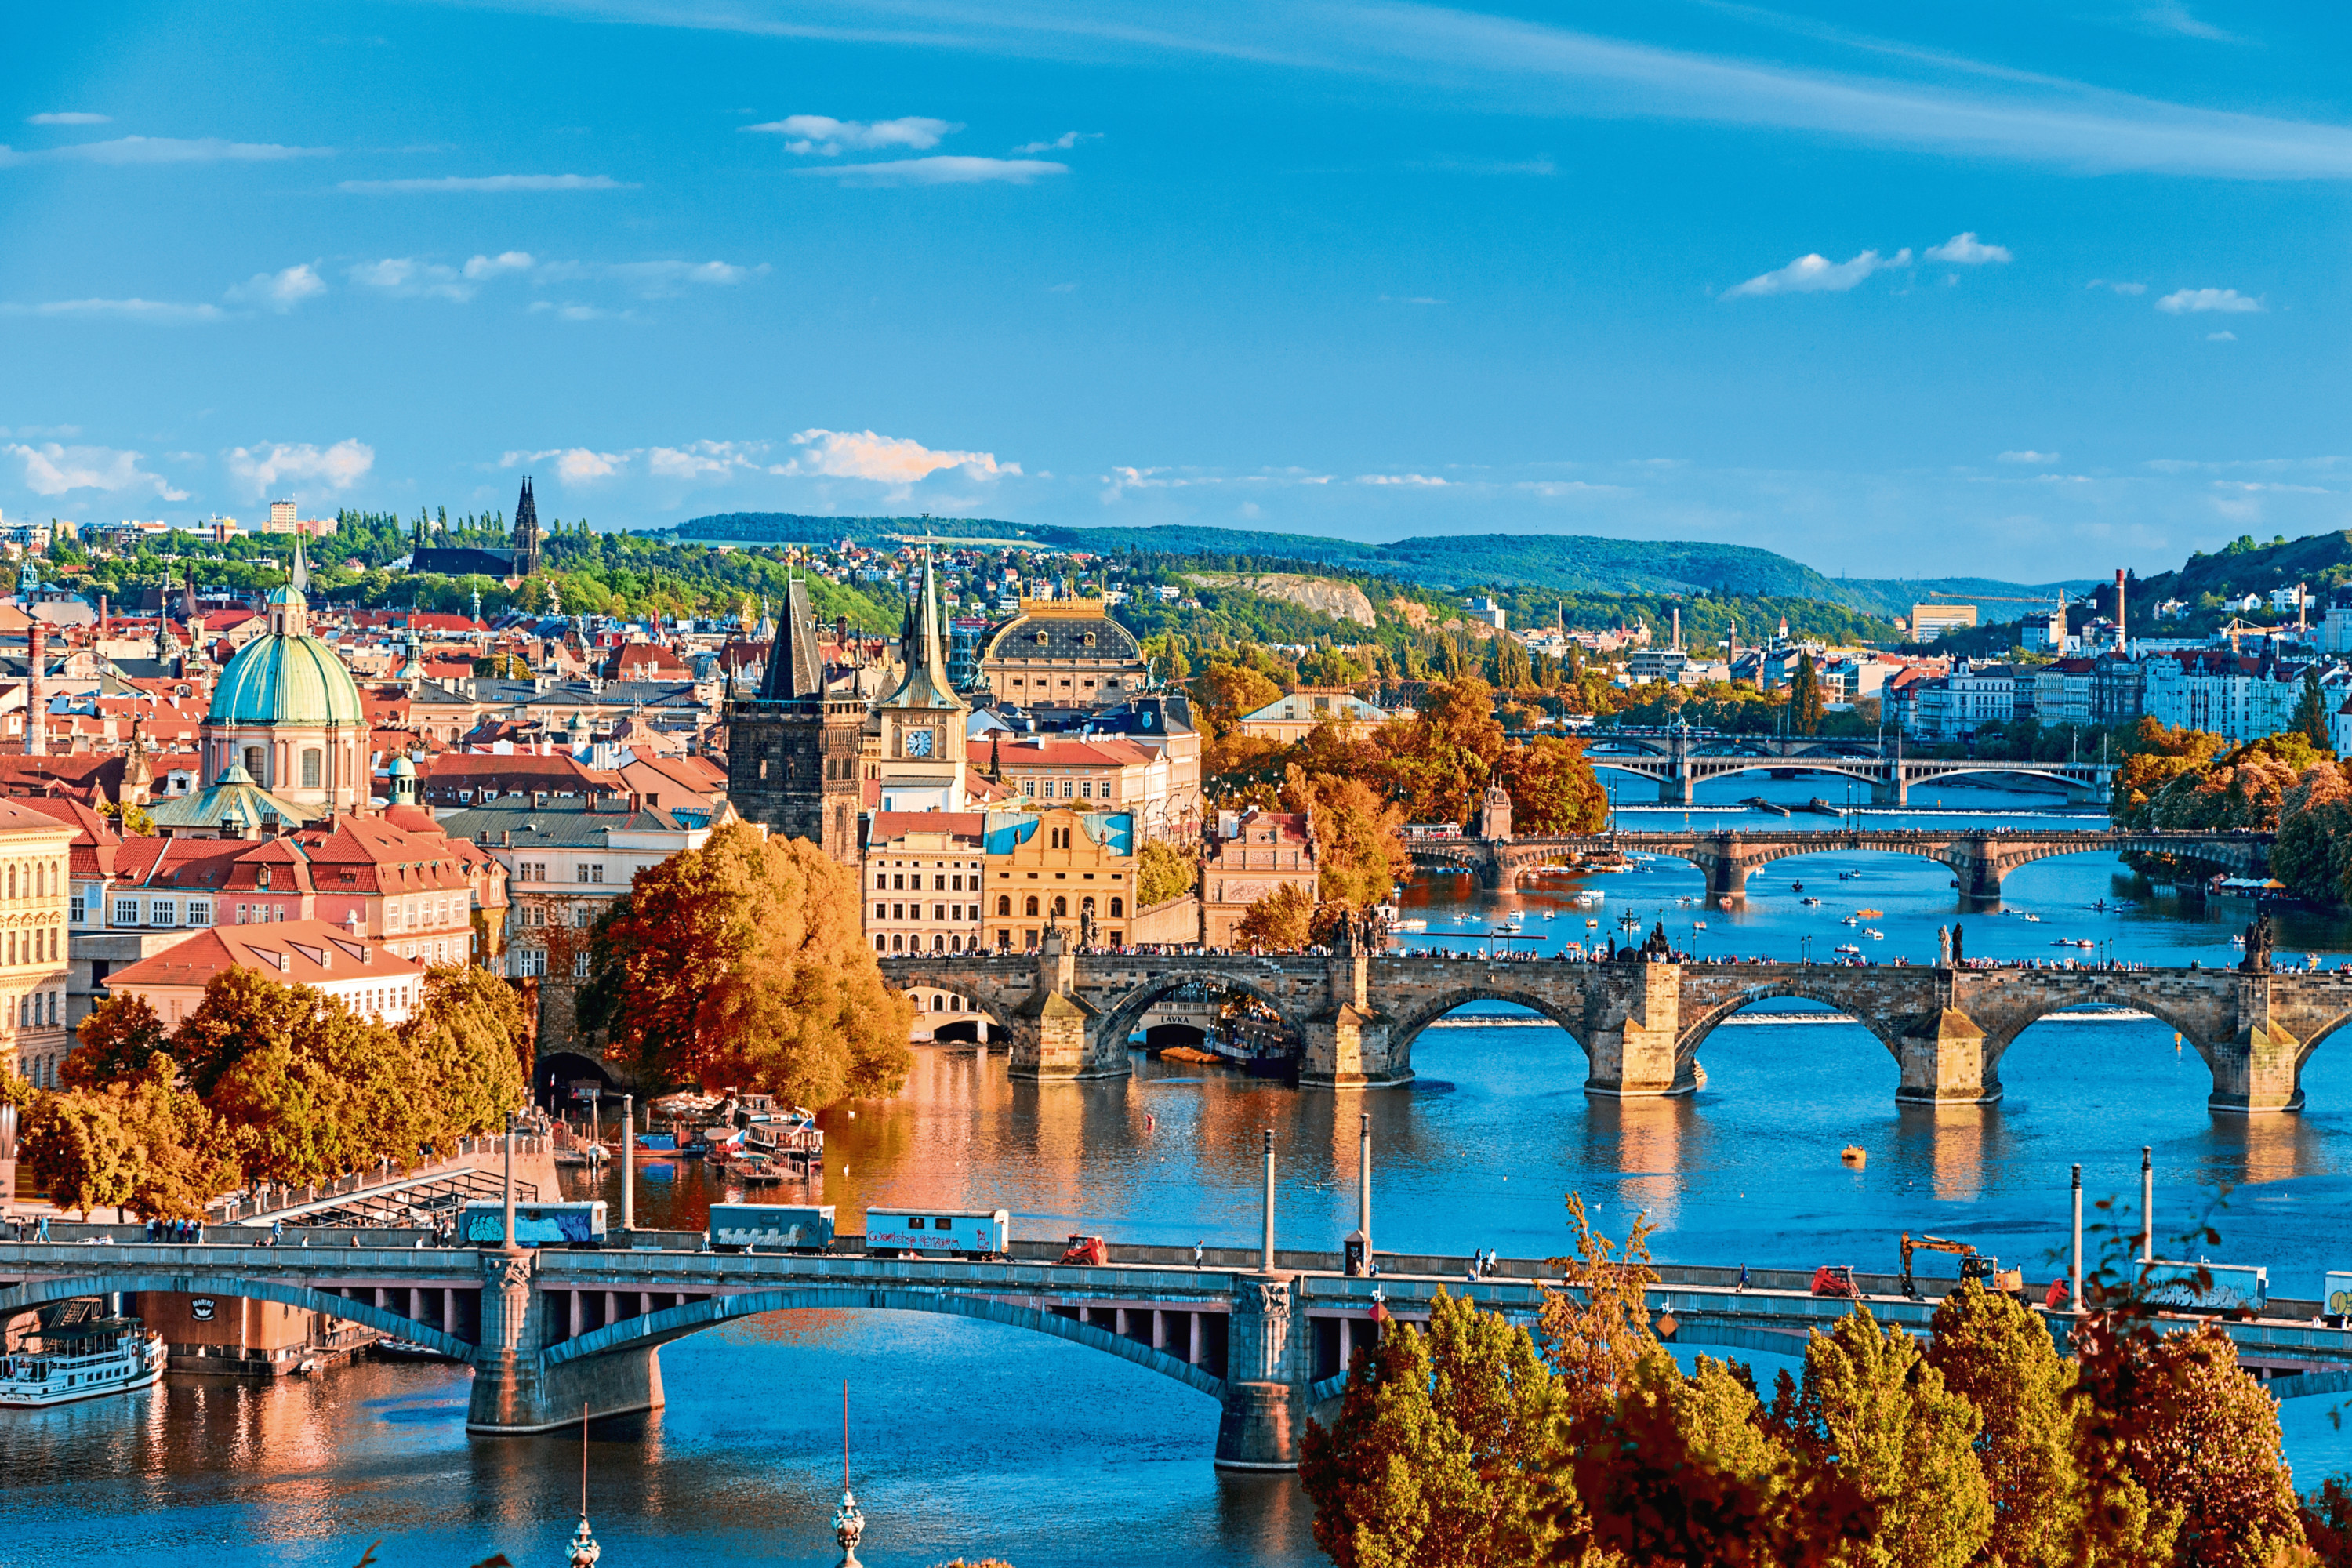 View of the Vltava River and Charle bridge, Prague (Getty Images)